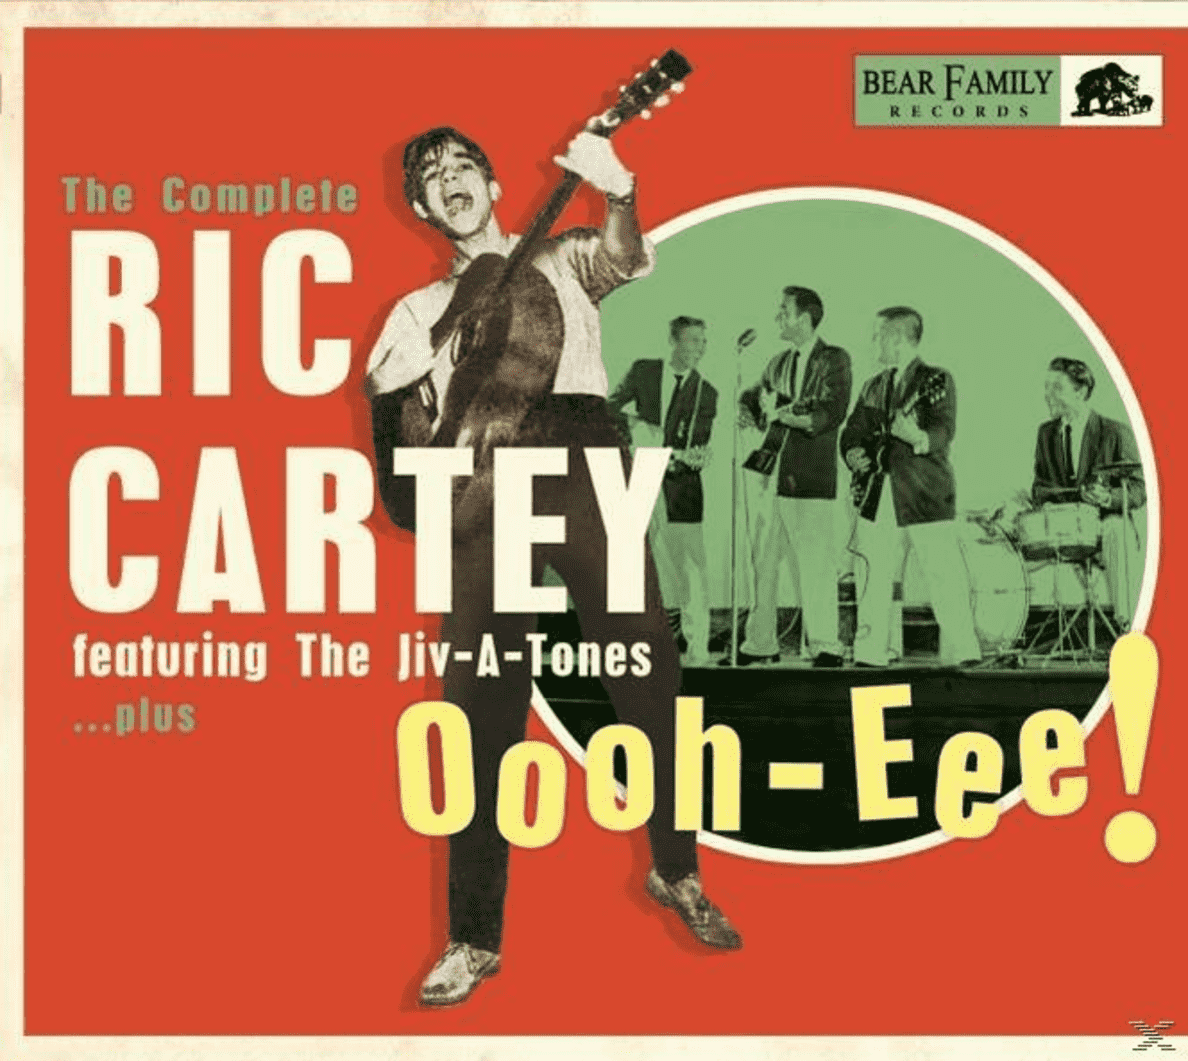 Oooh-Eee-The Complete Rick Cartey Featuring The Ric Cartey auf CD